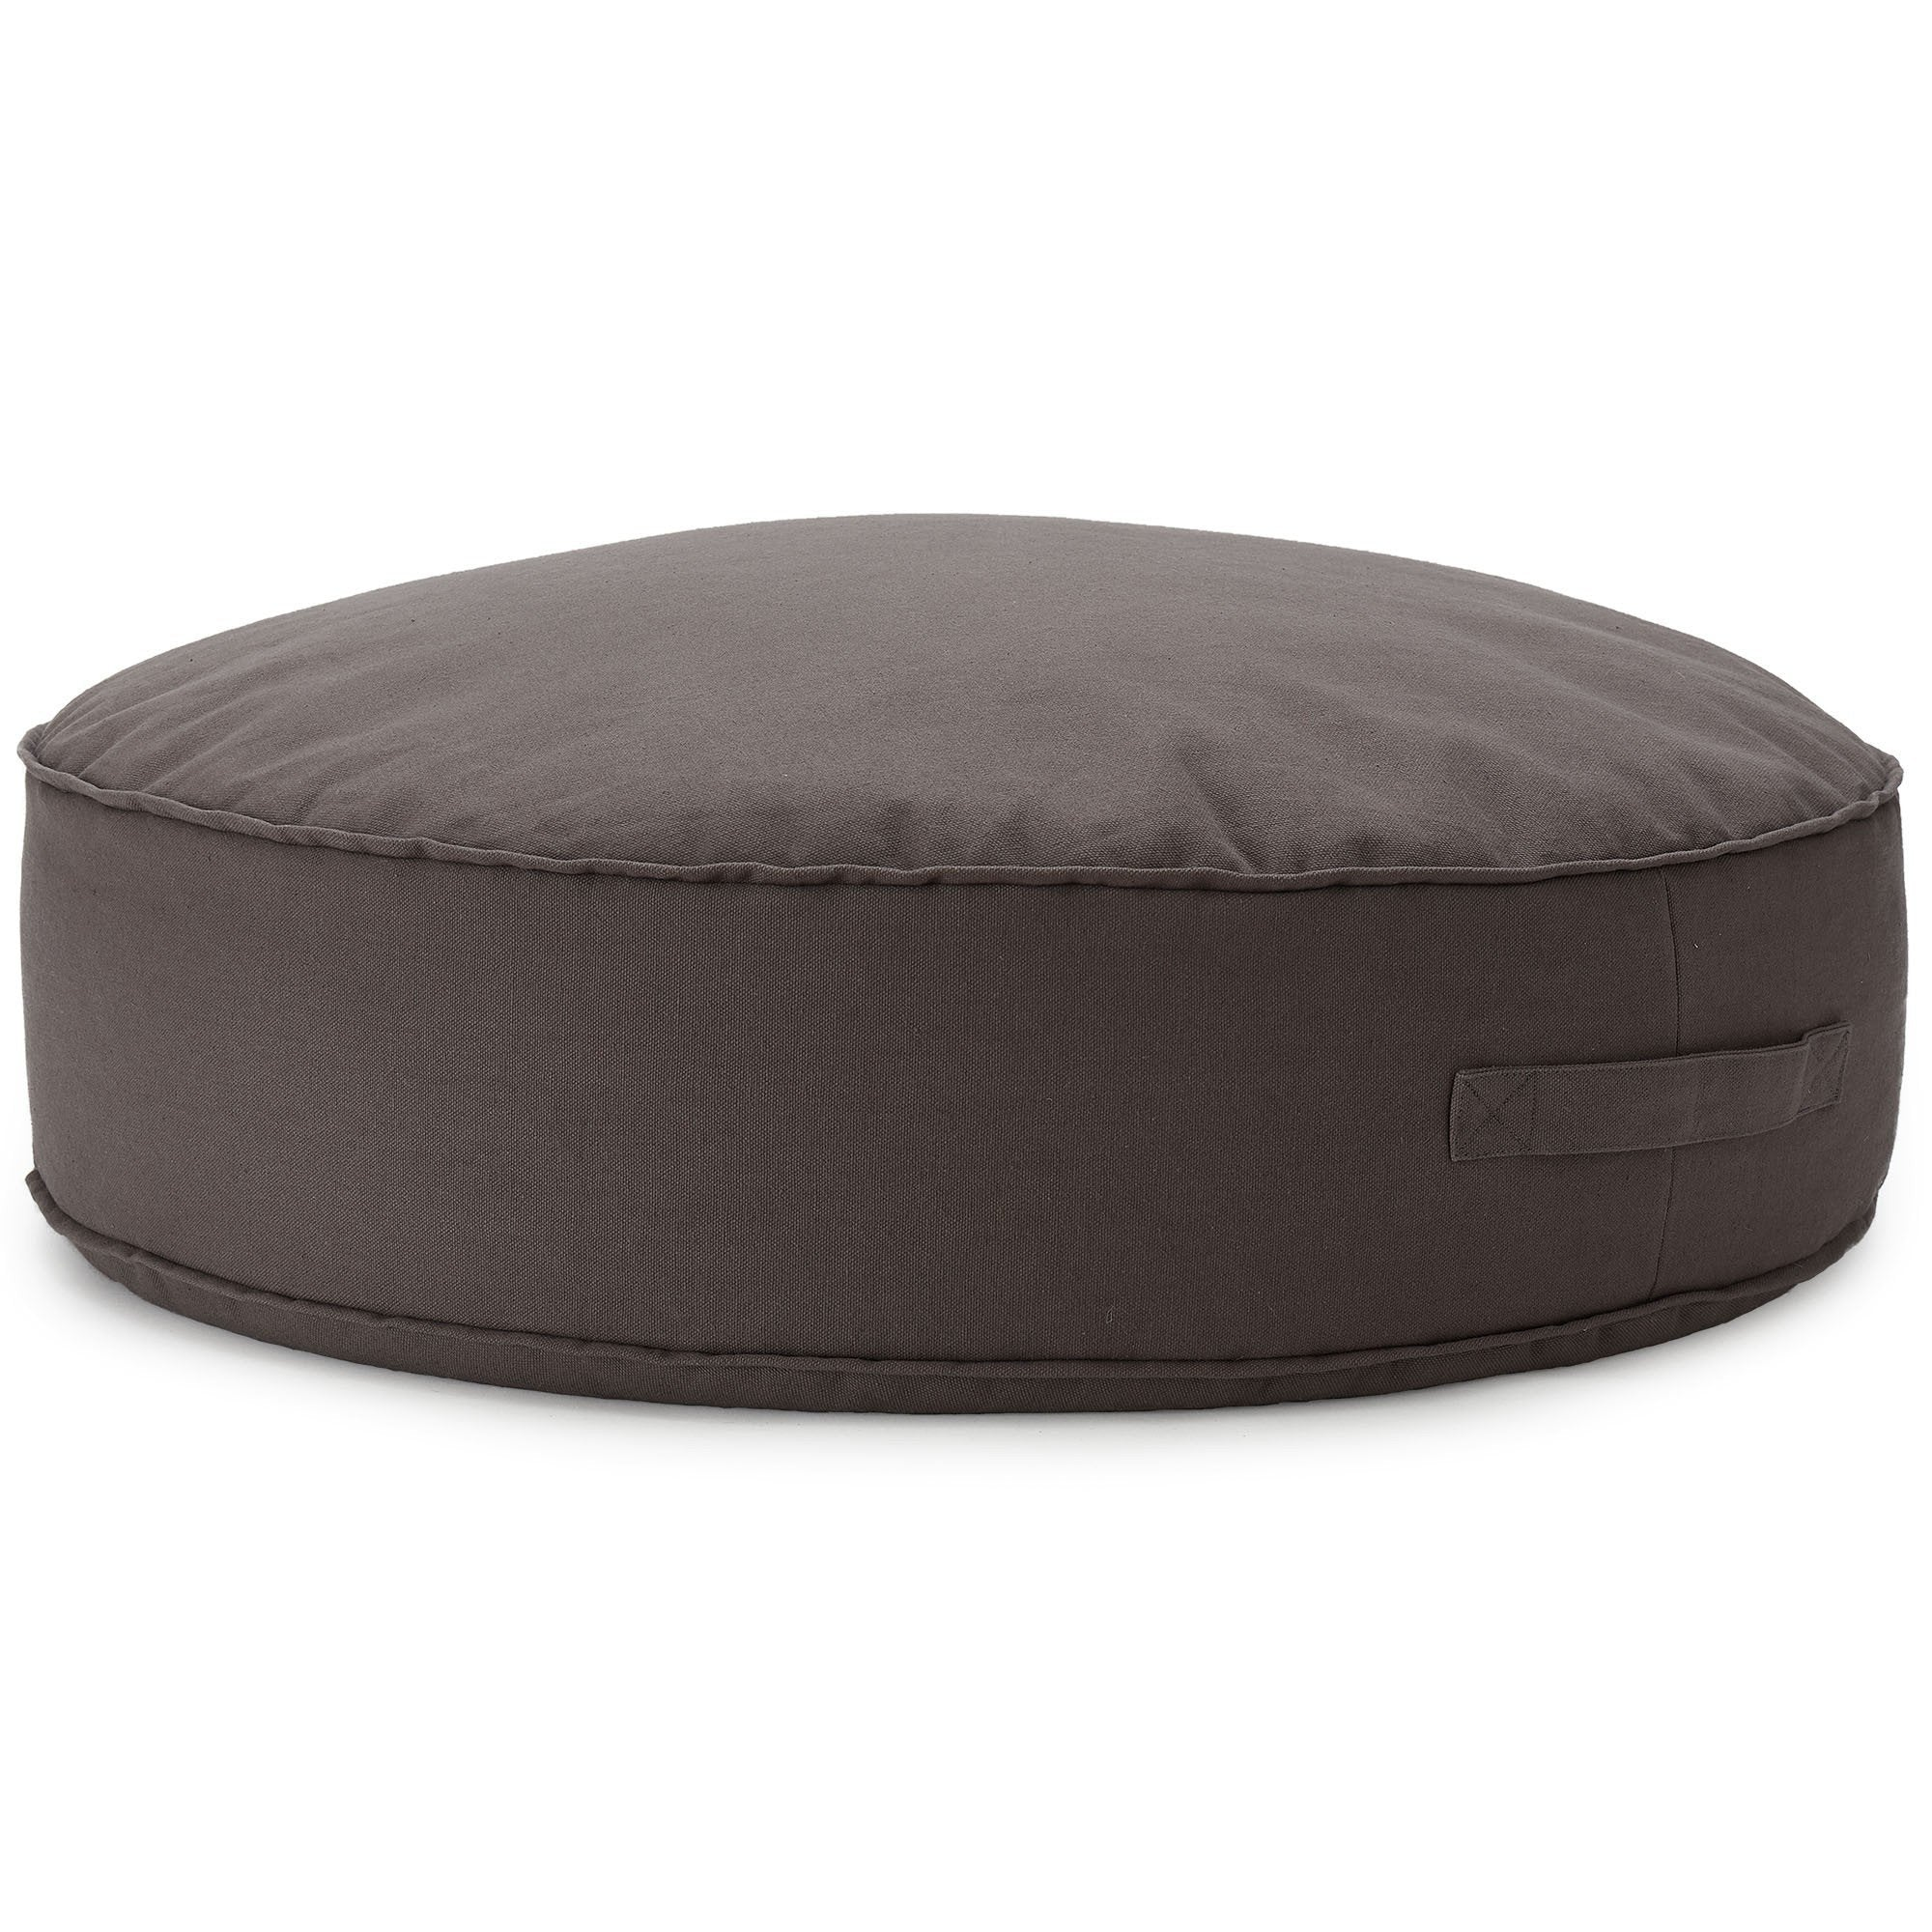 Nashik pouf, dark grey, 100% cotton